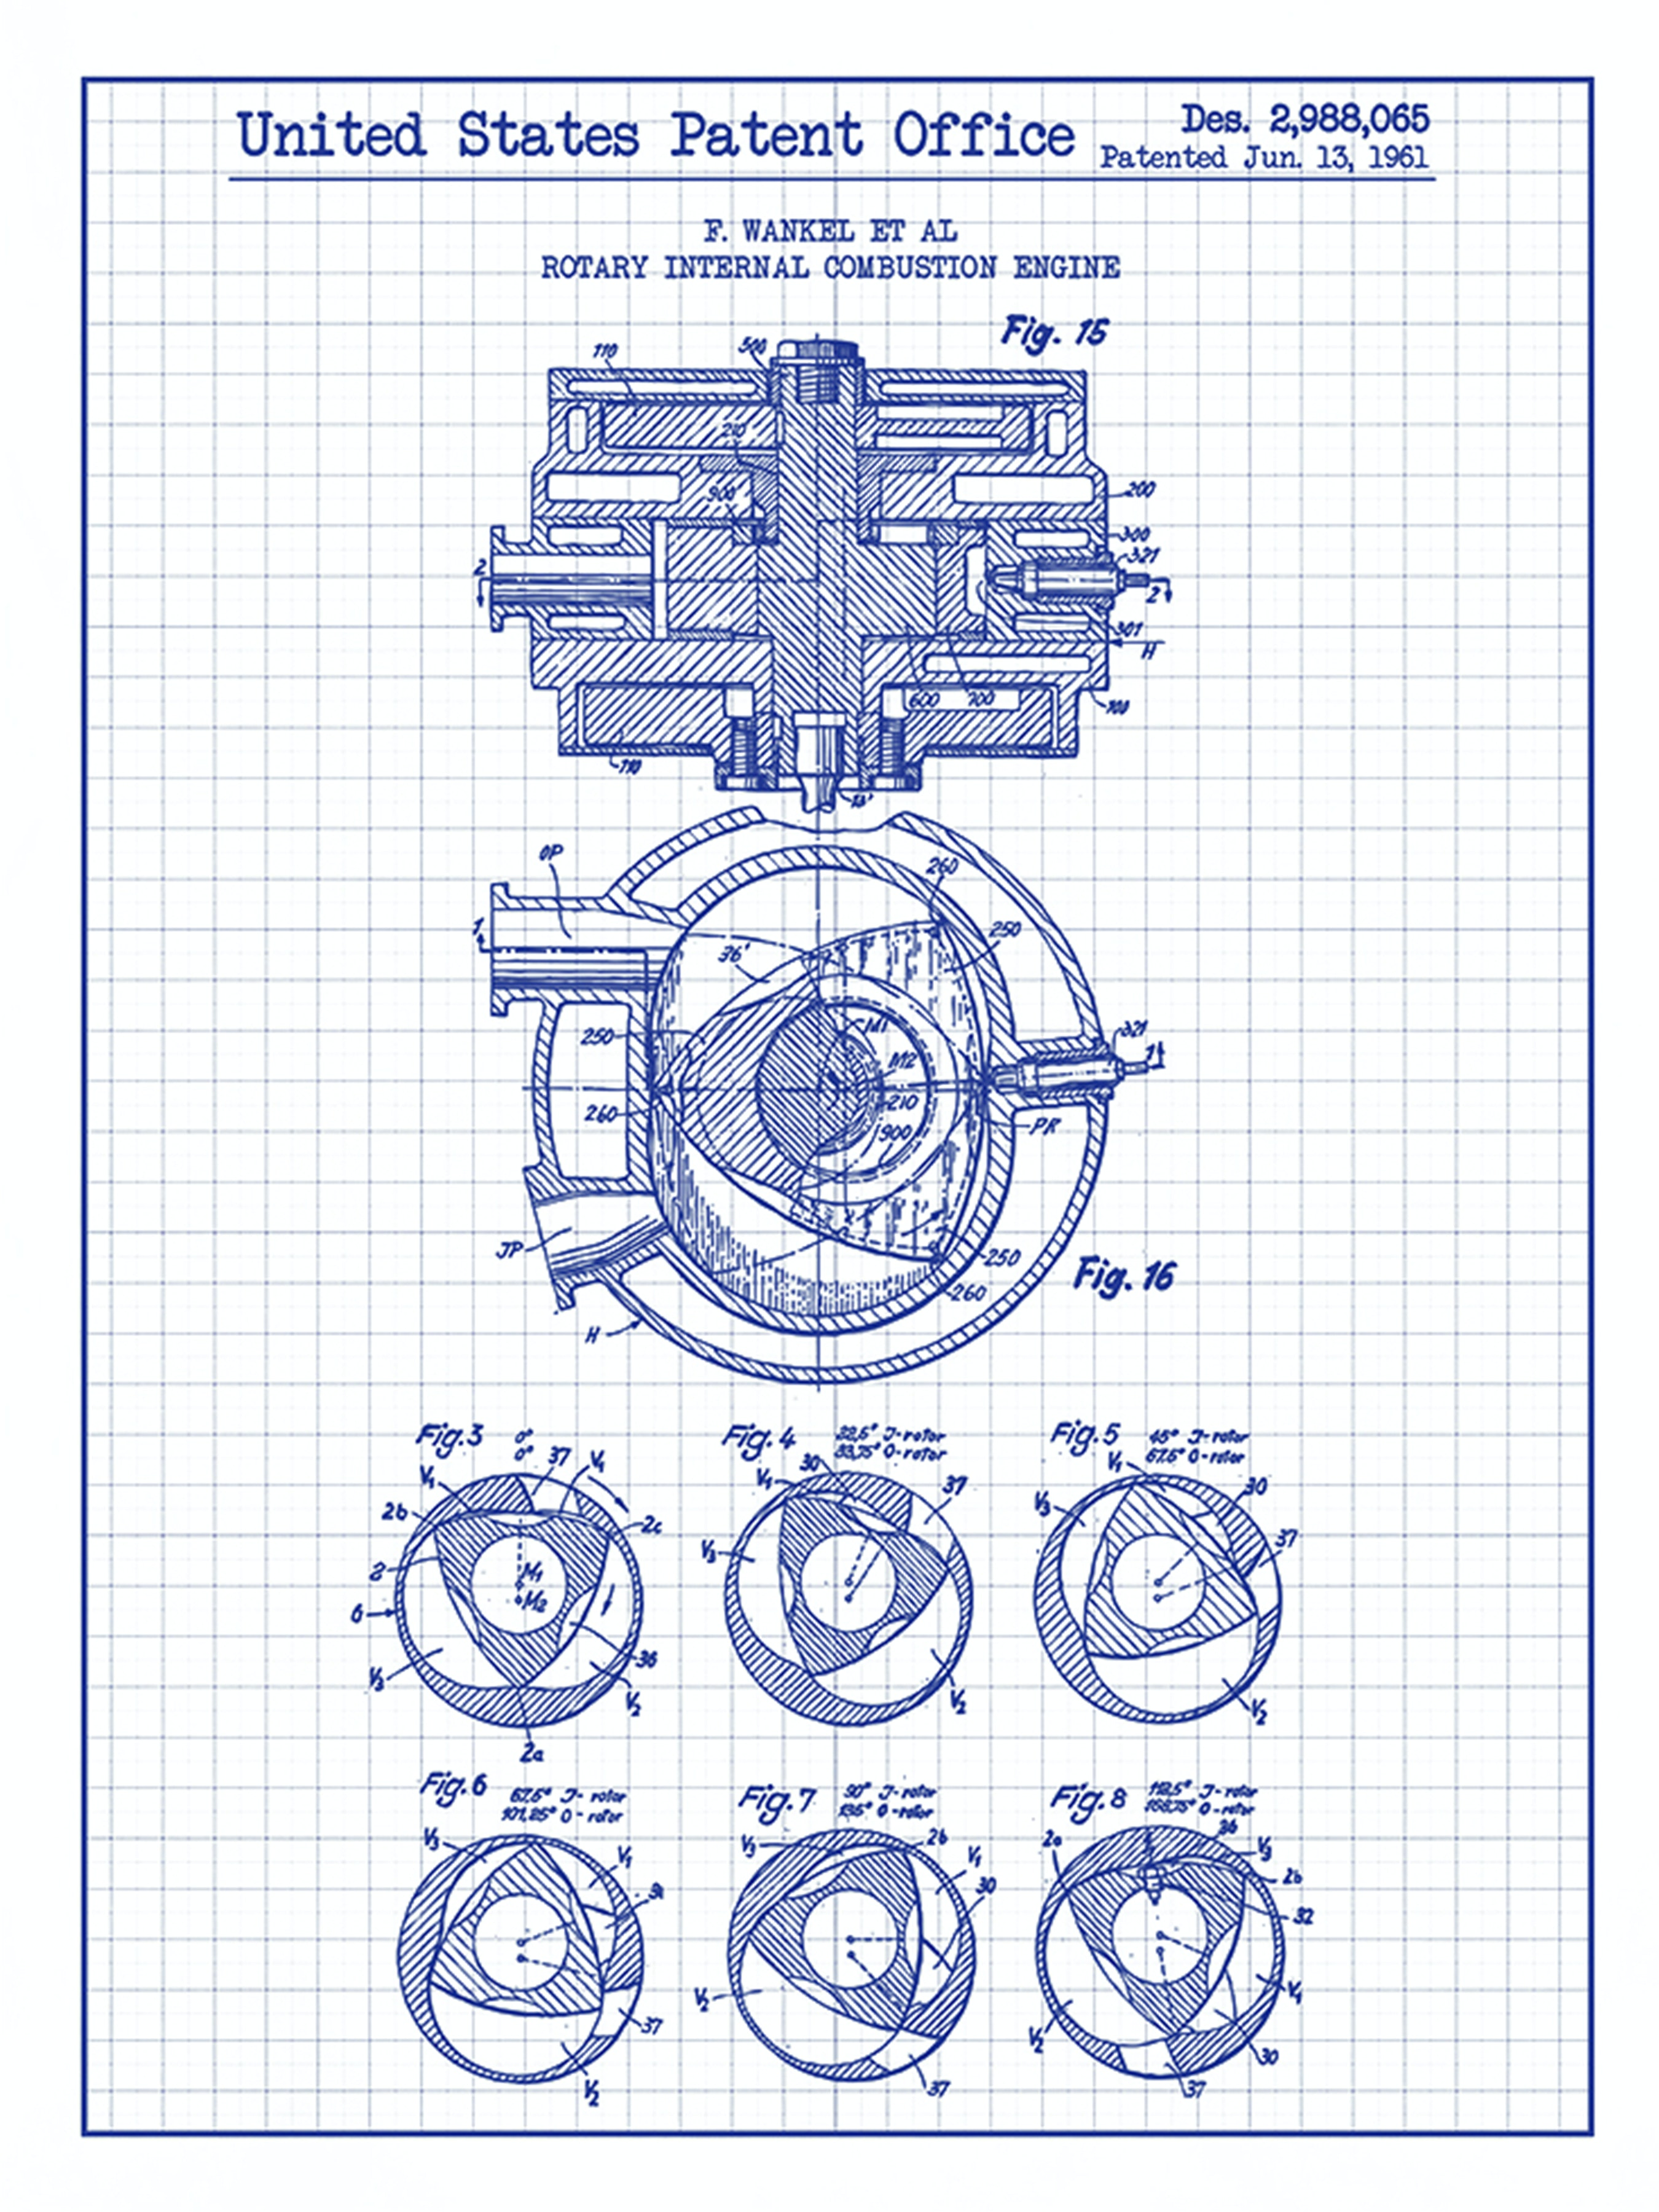 Rotary Internal Combustion Engine